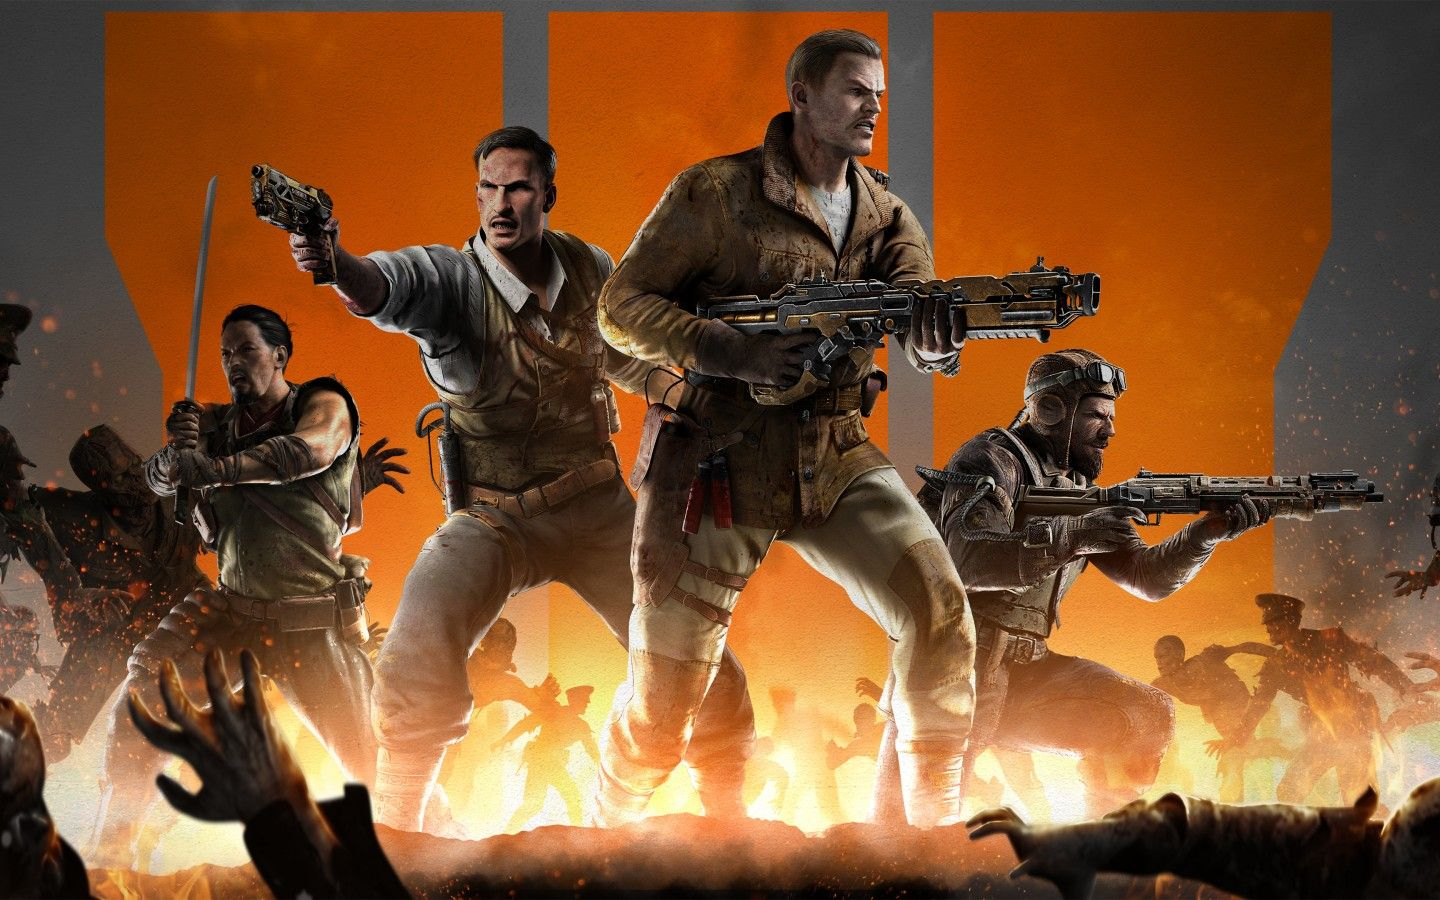 Black Ops 3 Zombies Wallpaper High Definition Call Of Duty Black Ops Iii Black Ops 3 Zombies Wallpaper Call Of Duty Black